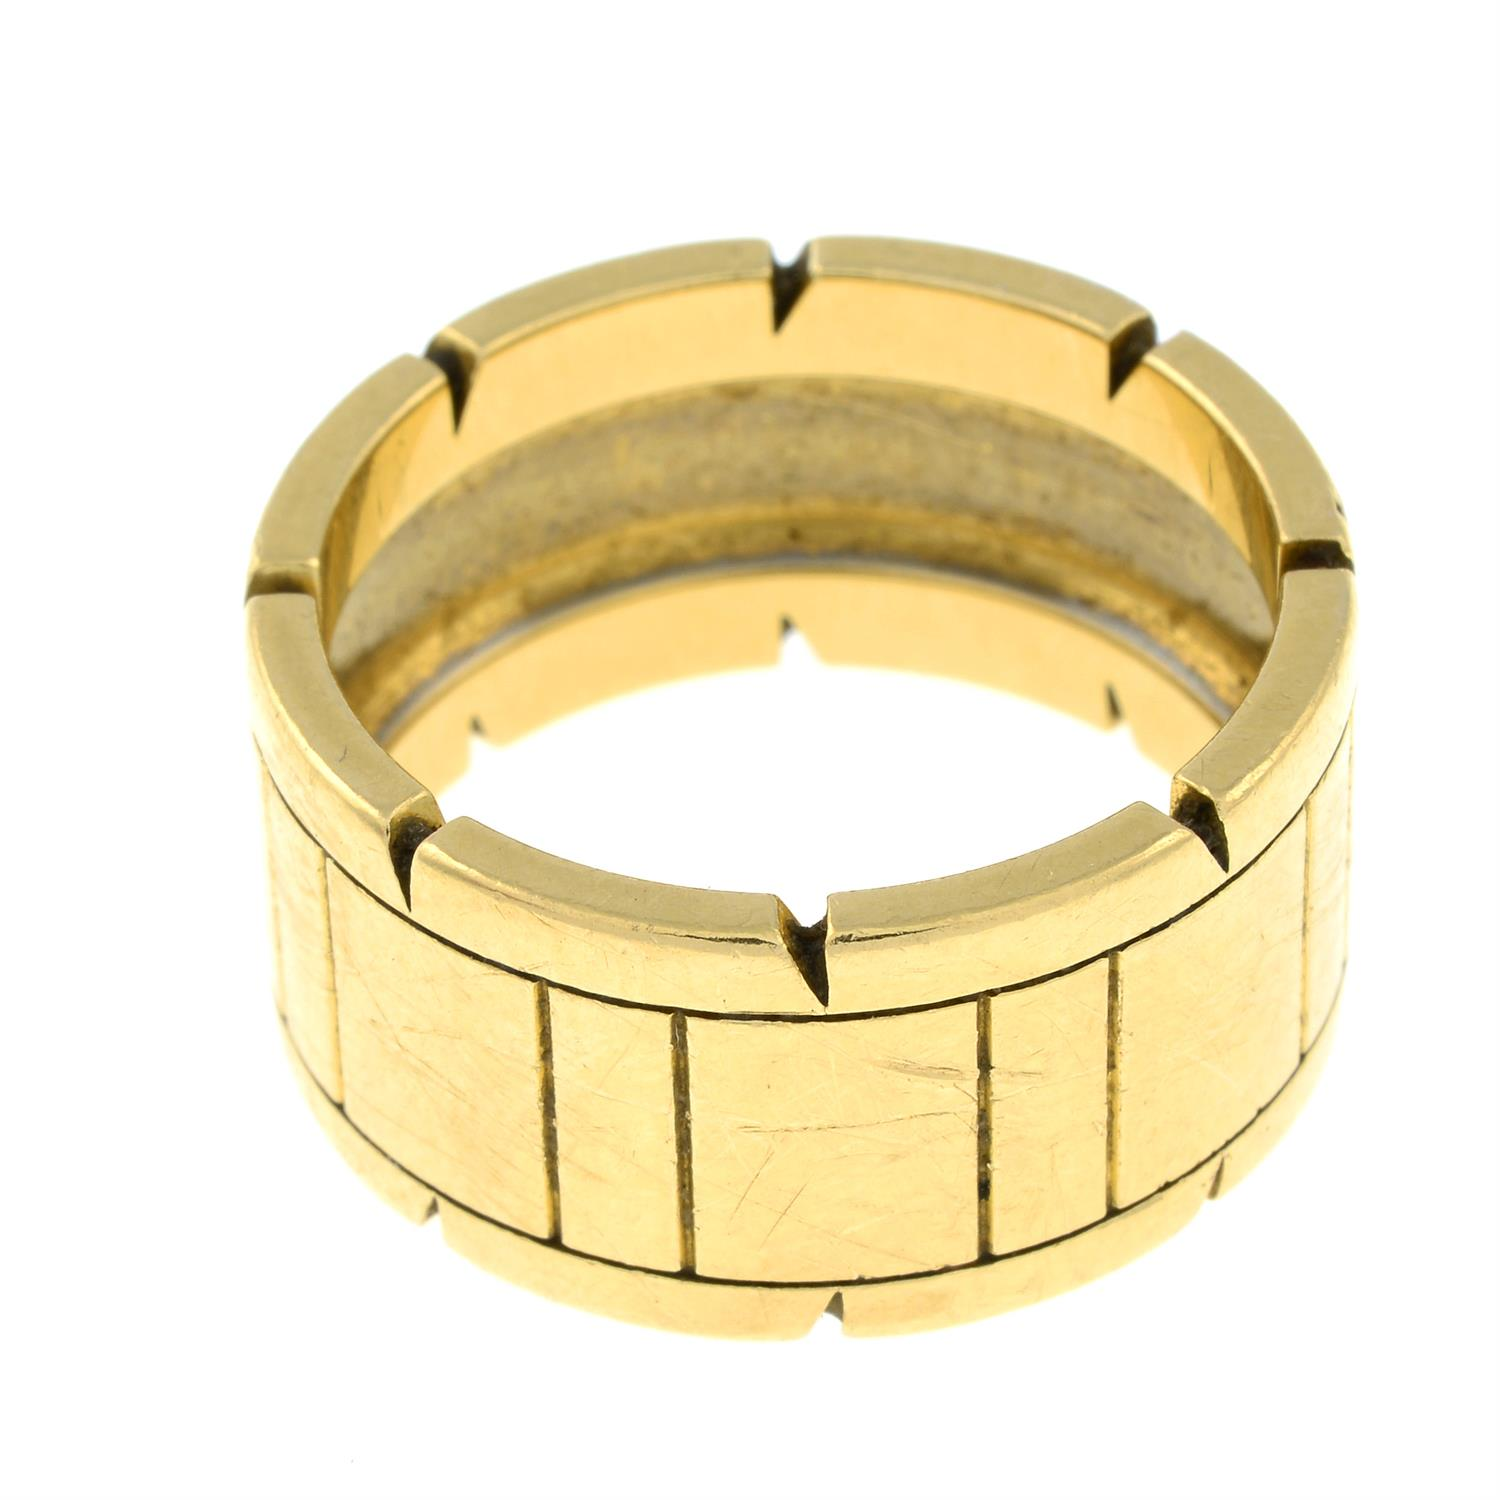 An 18ct gold 'Tank Francaise' ring, by Cartier. - Image 3 of 5